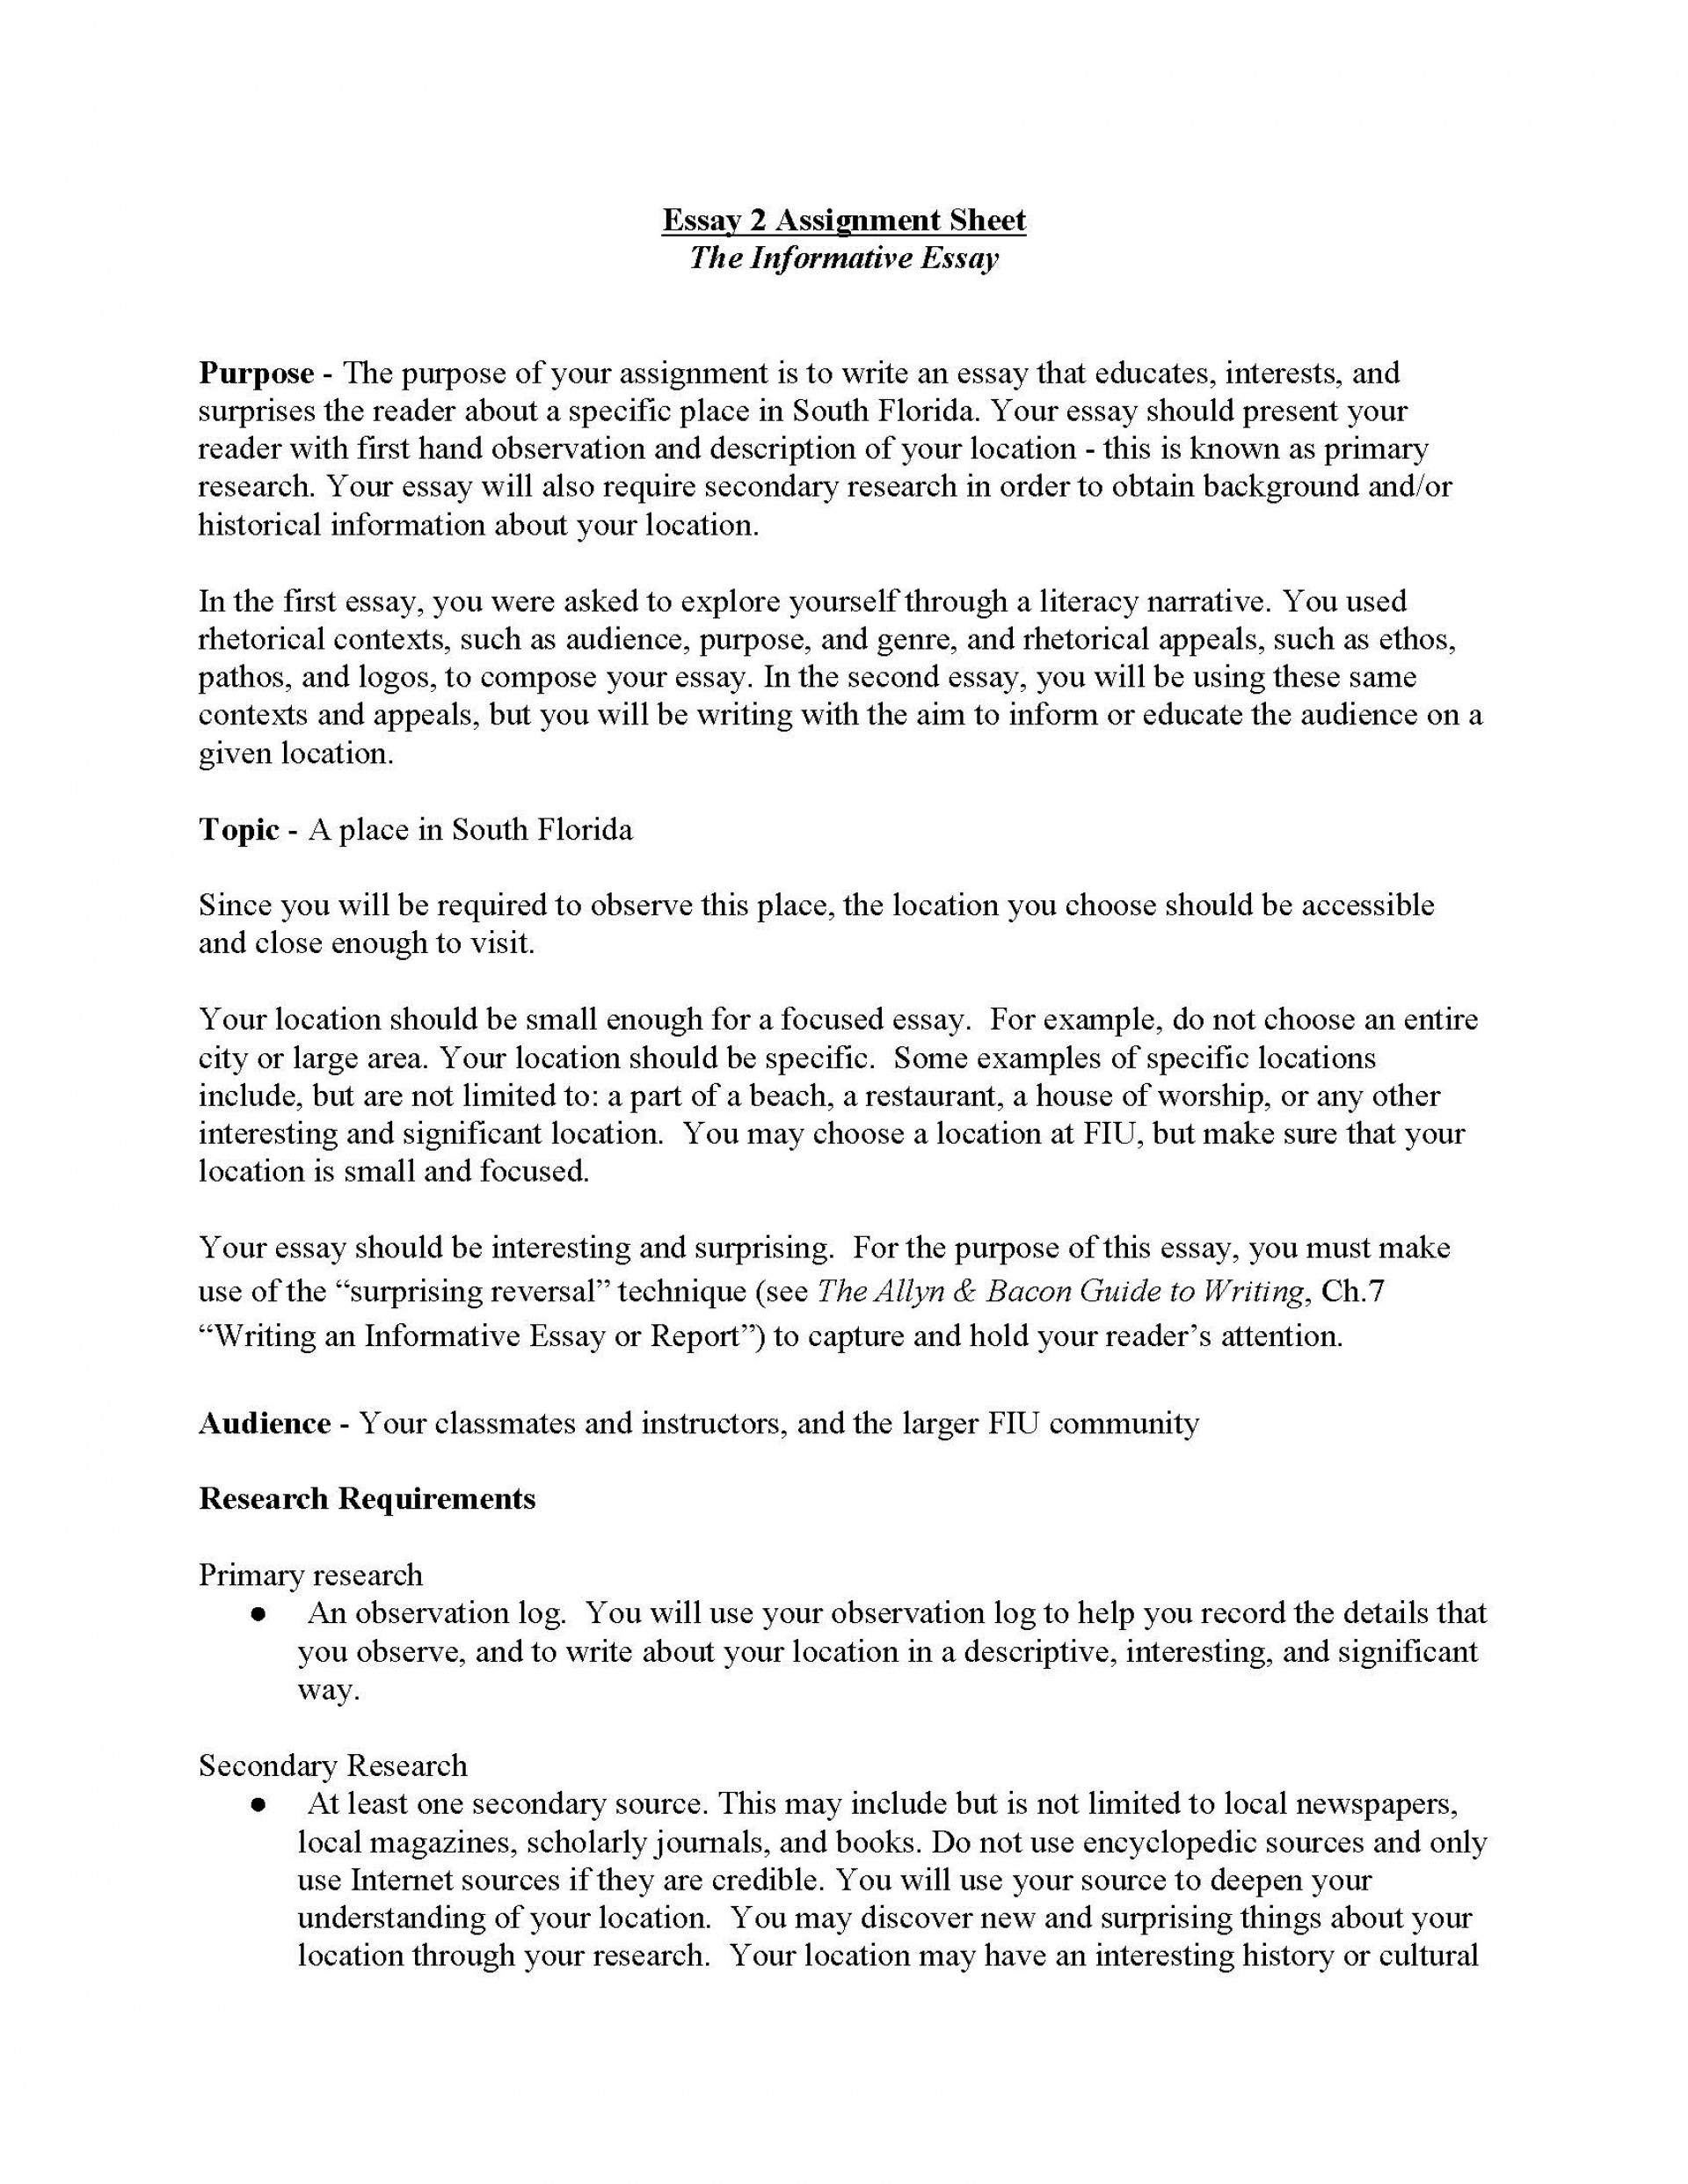 004 Essay Example Writing An Informative Unit Assignment Page Sensational About The Immigrant Experience Ppt Introduction 1920